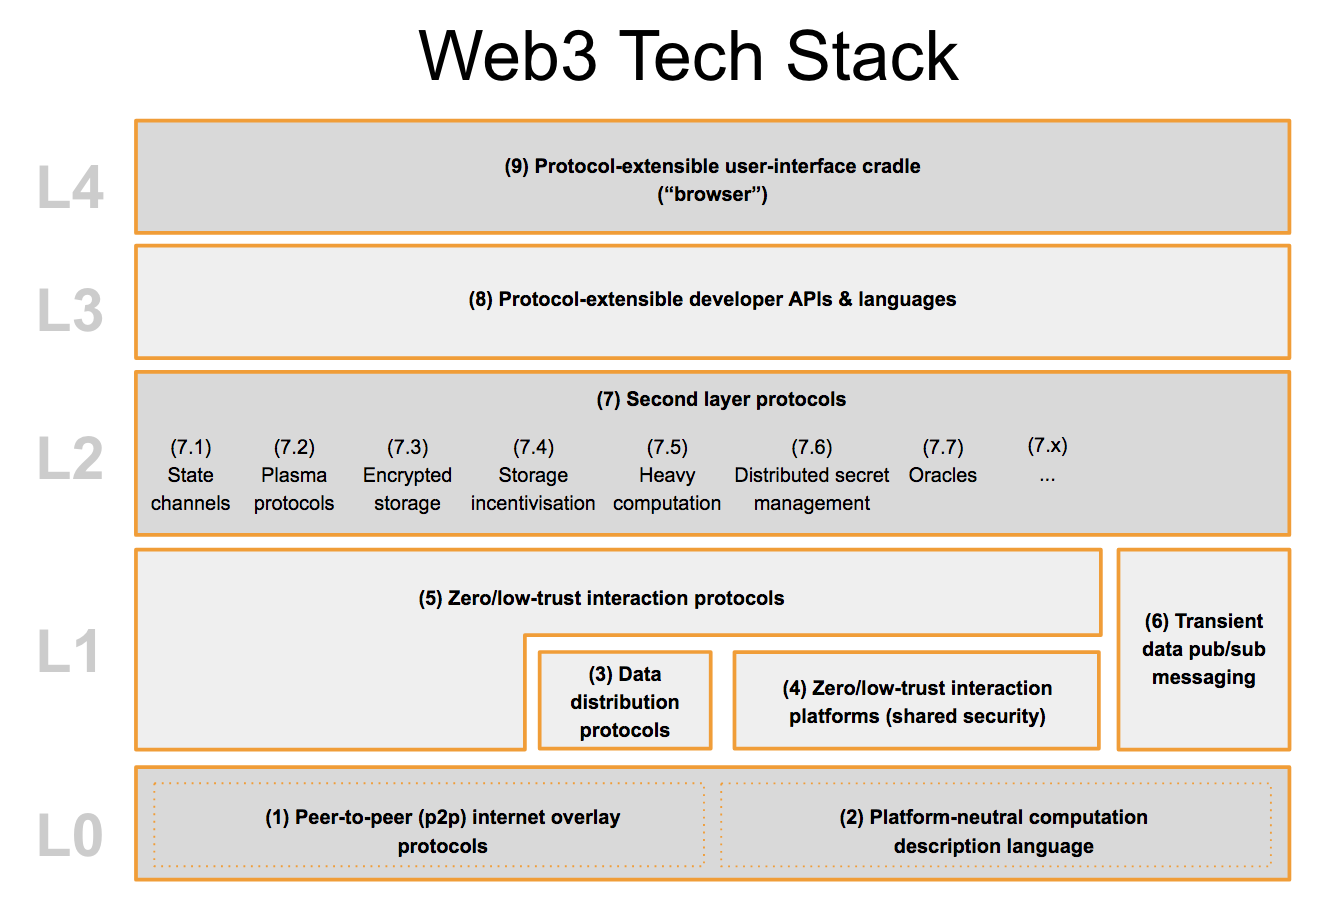 The Web3 tech stack proposed by the Web3 Foundation